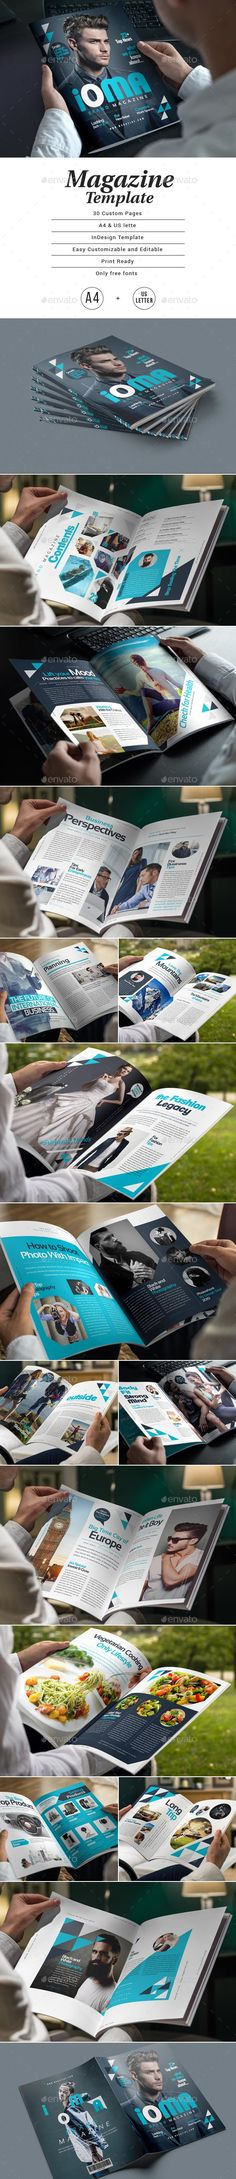 MAGAZINE TEMPLATE LIVE PREVIEW Details Magazine, Cool Magazine, Print Magazine, Indesign Templates, Print Templates, Templates Free, Magazine Template, Free Prints, Website Template